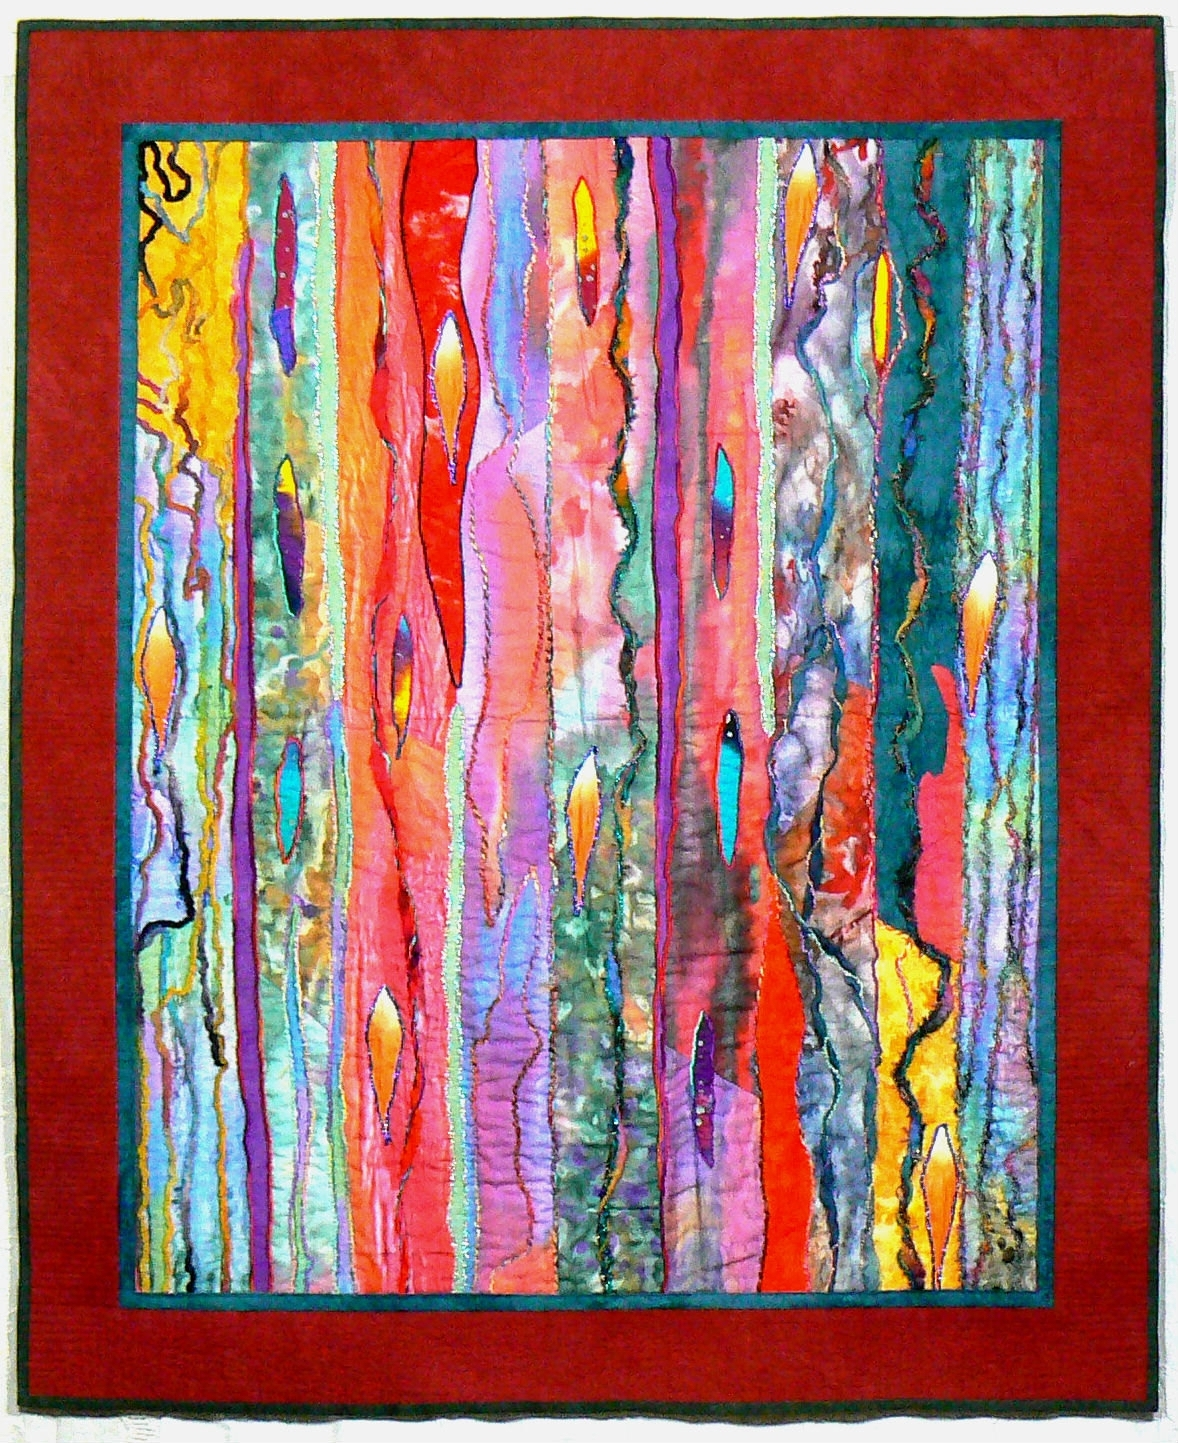 Fiber Art Quilt, Art Wall Hanging, Contemporary Quilt, Modern Art Throughout Most Popular Quilt Fabric Wall Art (View 7 of 15)